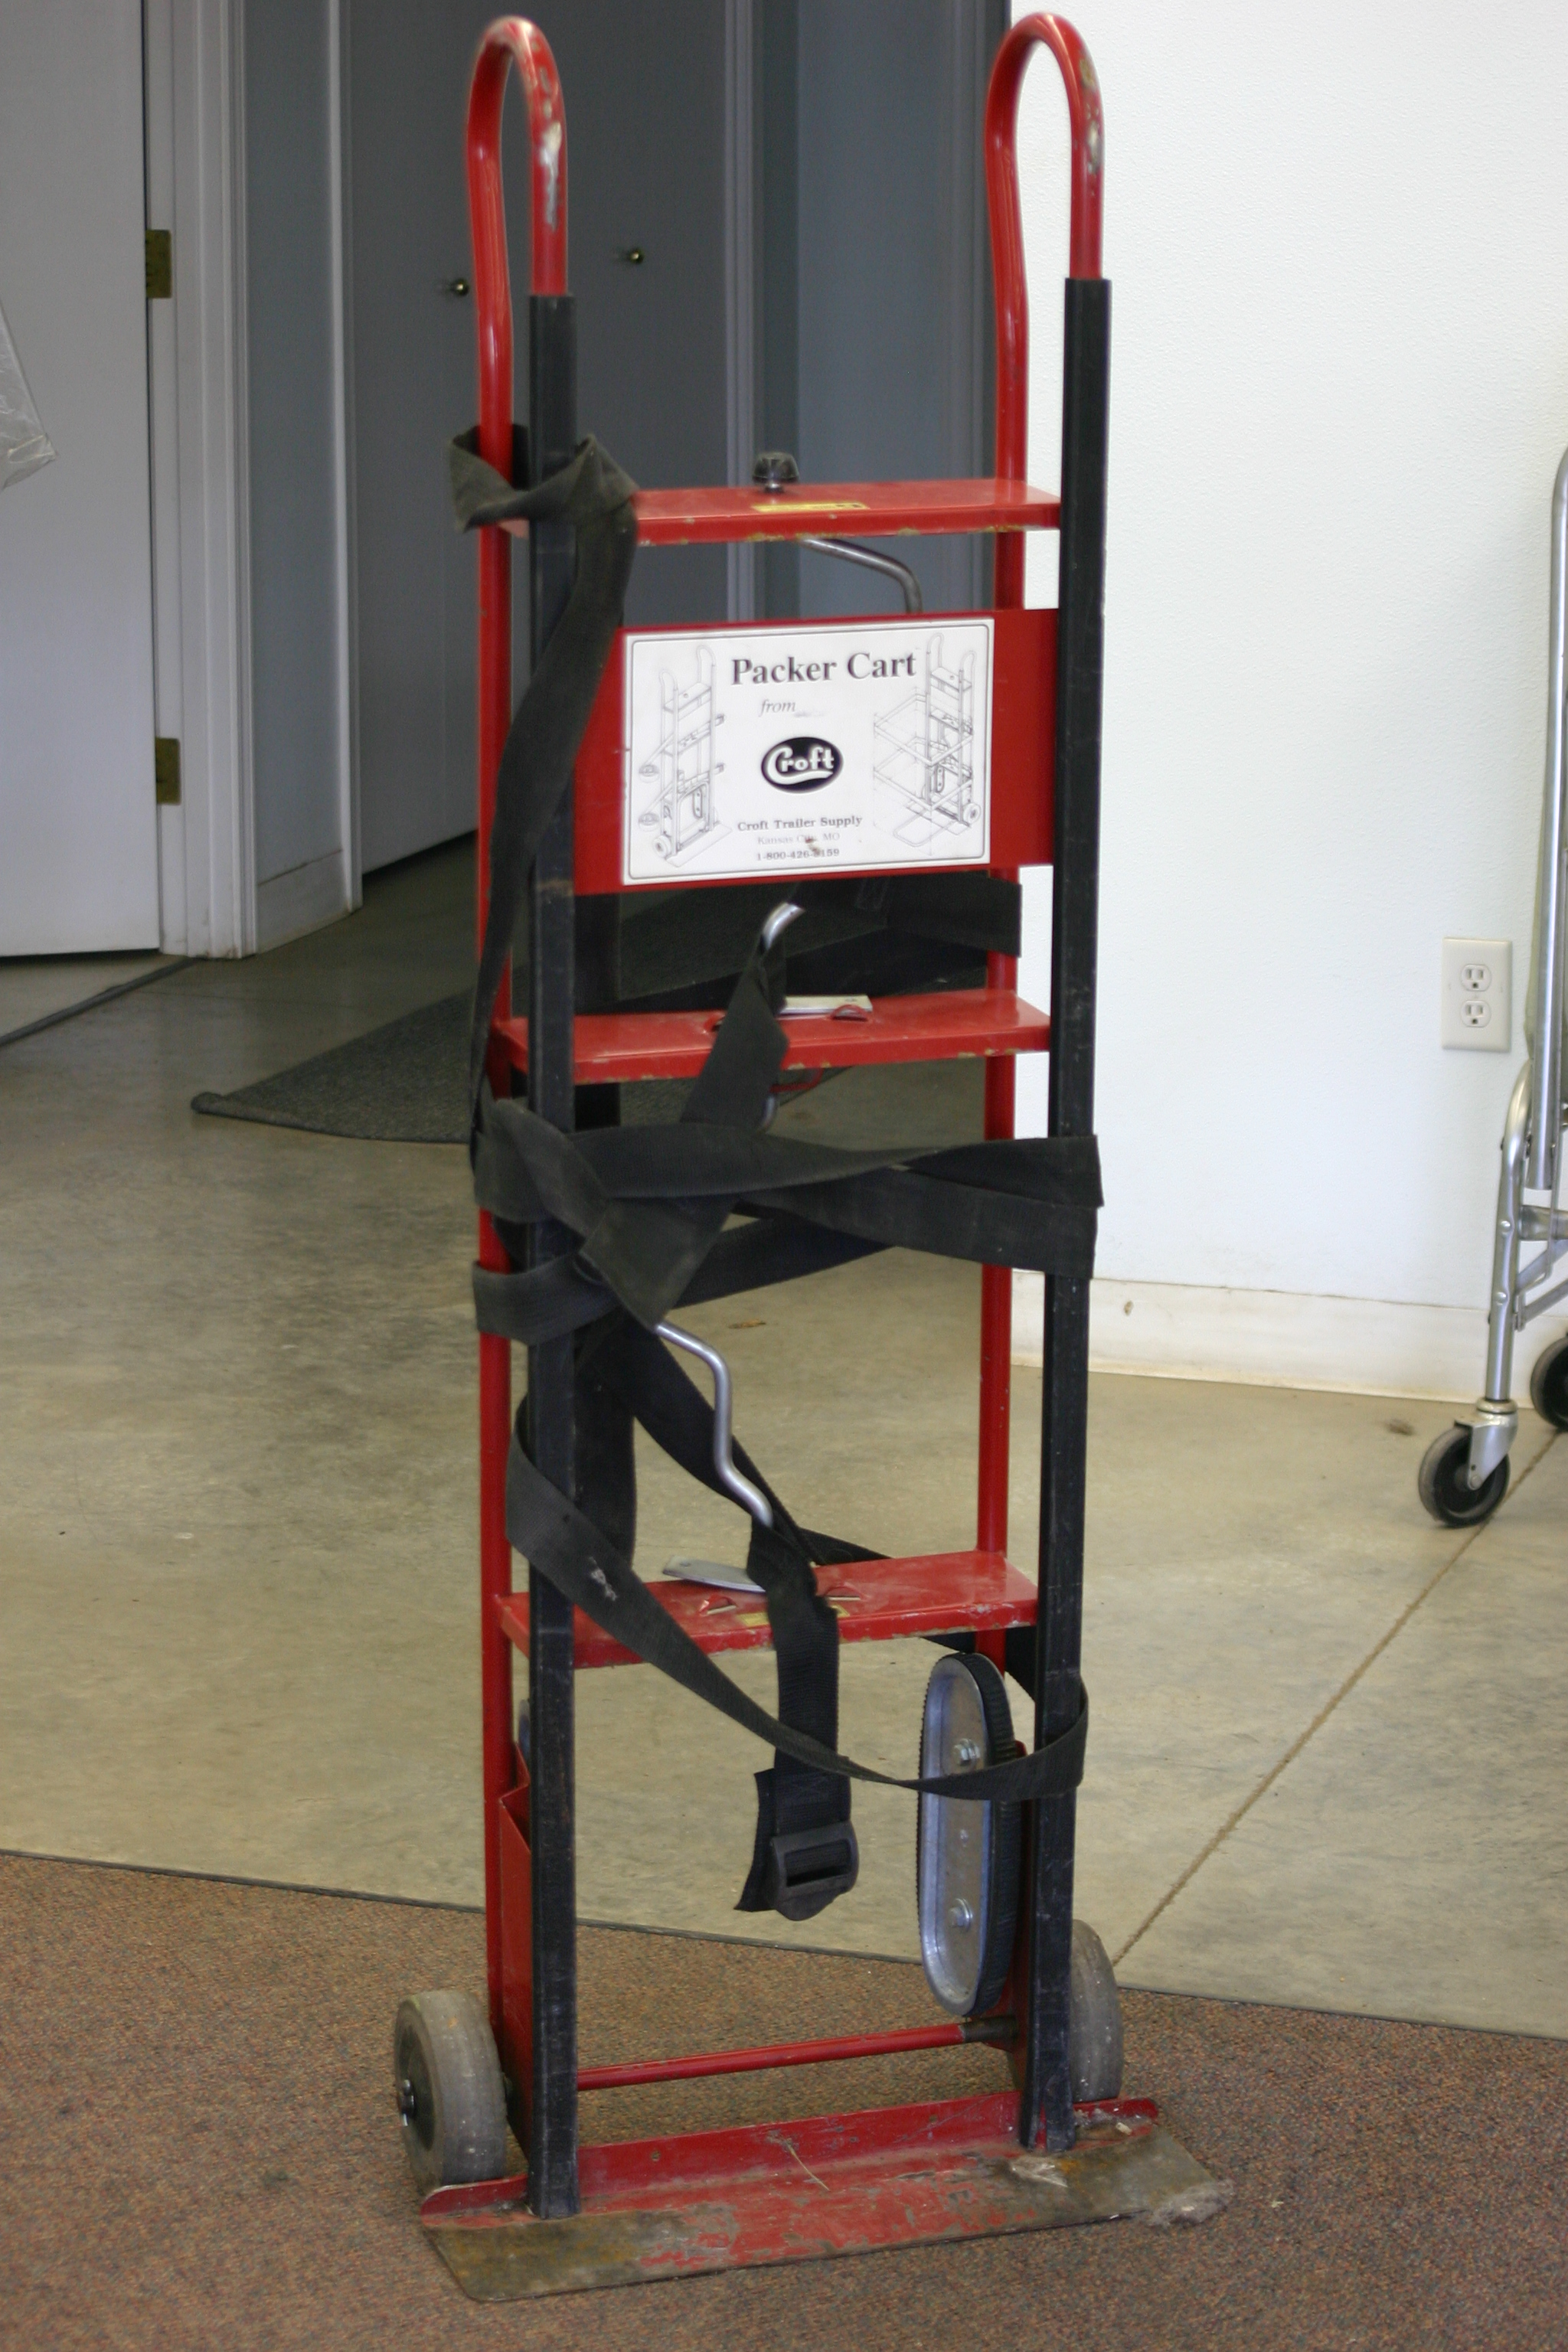 Appliance Dolly  Industrial Hand Trucks And Dollies Pallet Trucks Utility  Trucks Appliance Dolly Pallet Jacks Hand Carts  Coffing Hoist 1 233 Ton. Appliance Dolly  Industrial Hand Trucks And Dollies Pallet Trucks